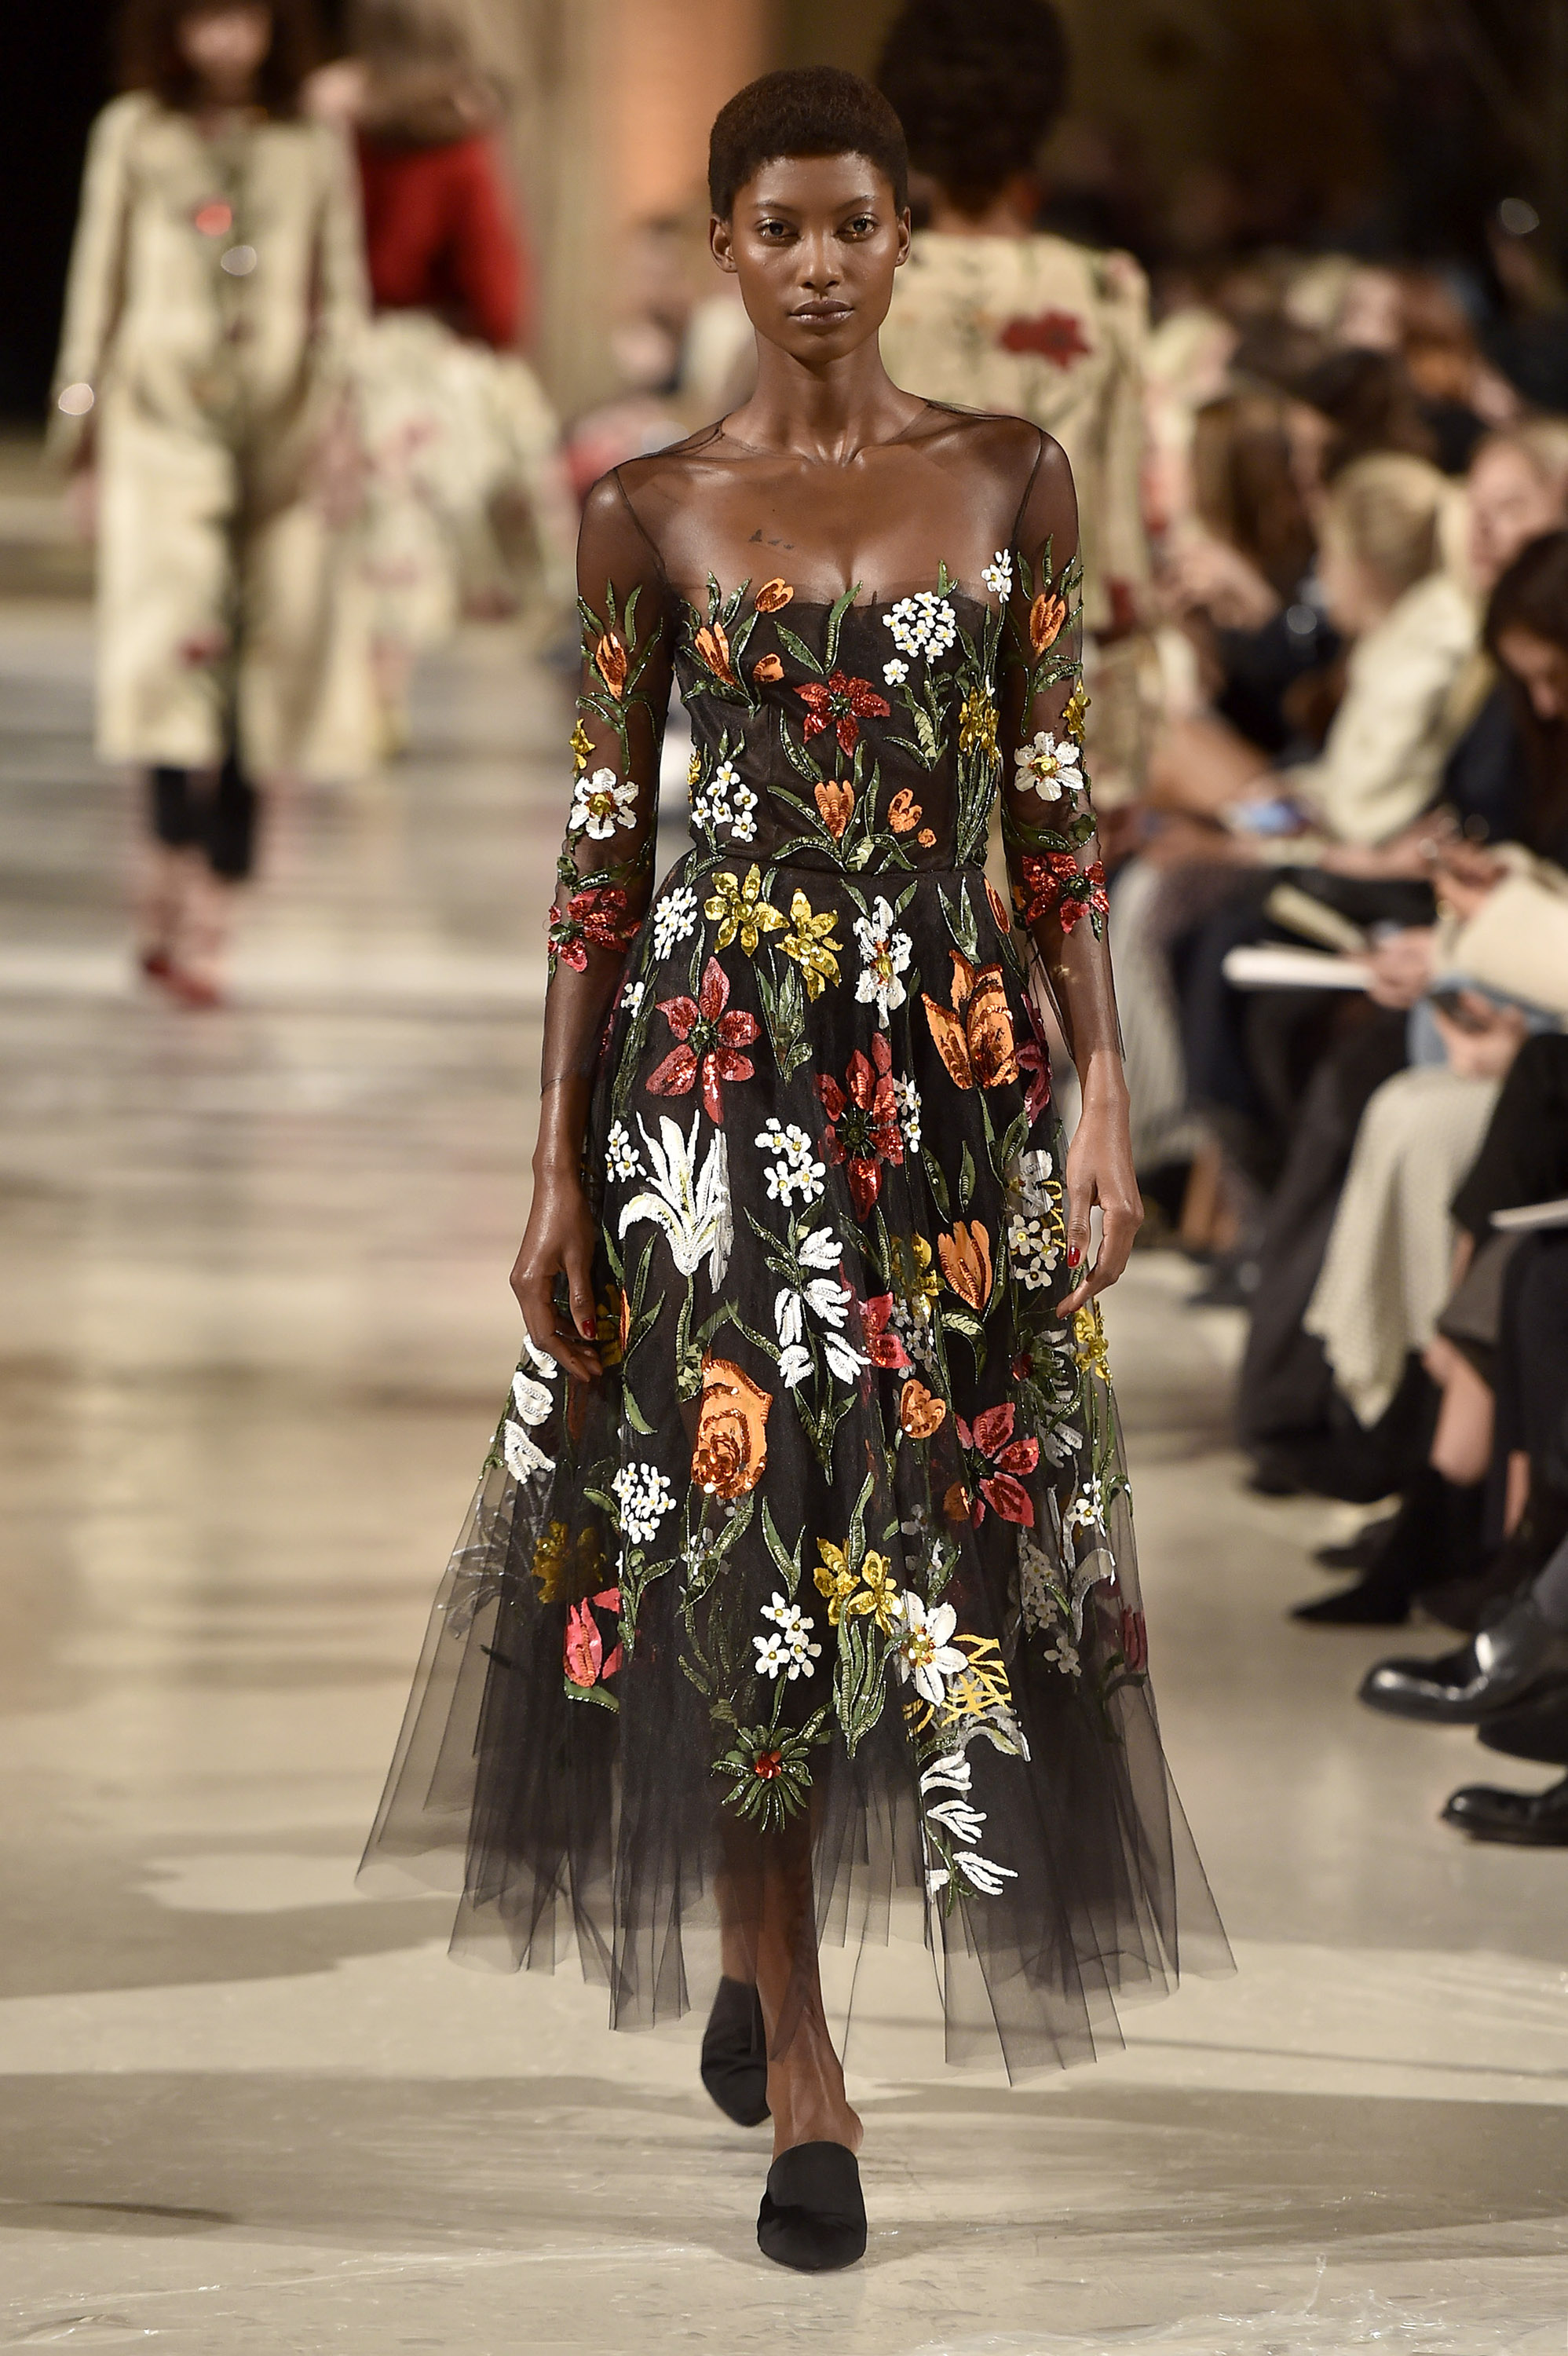 Oscar de la renta, desfile, show, New York, fashion week